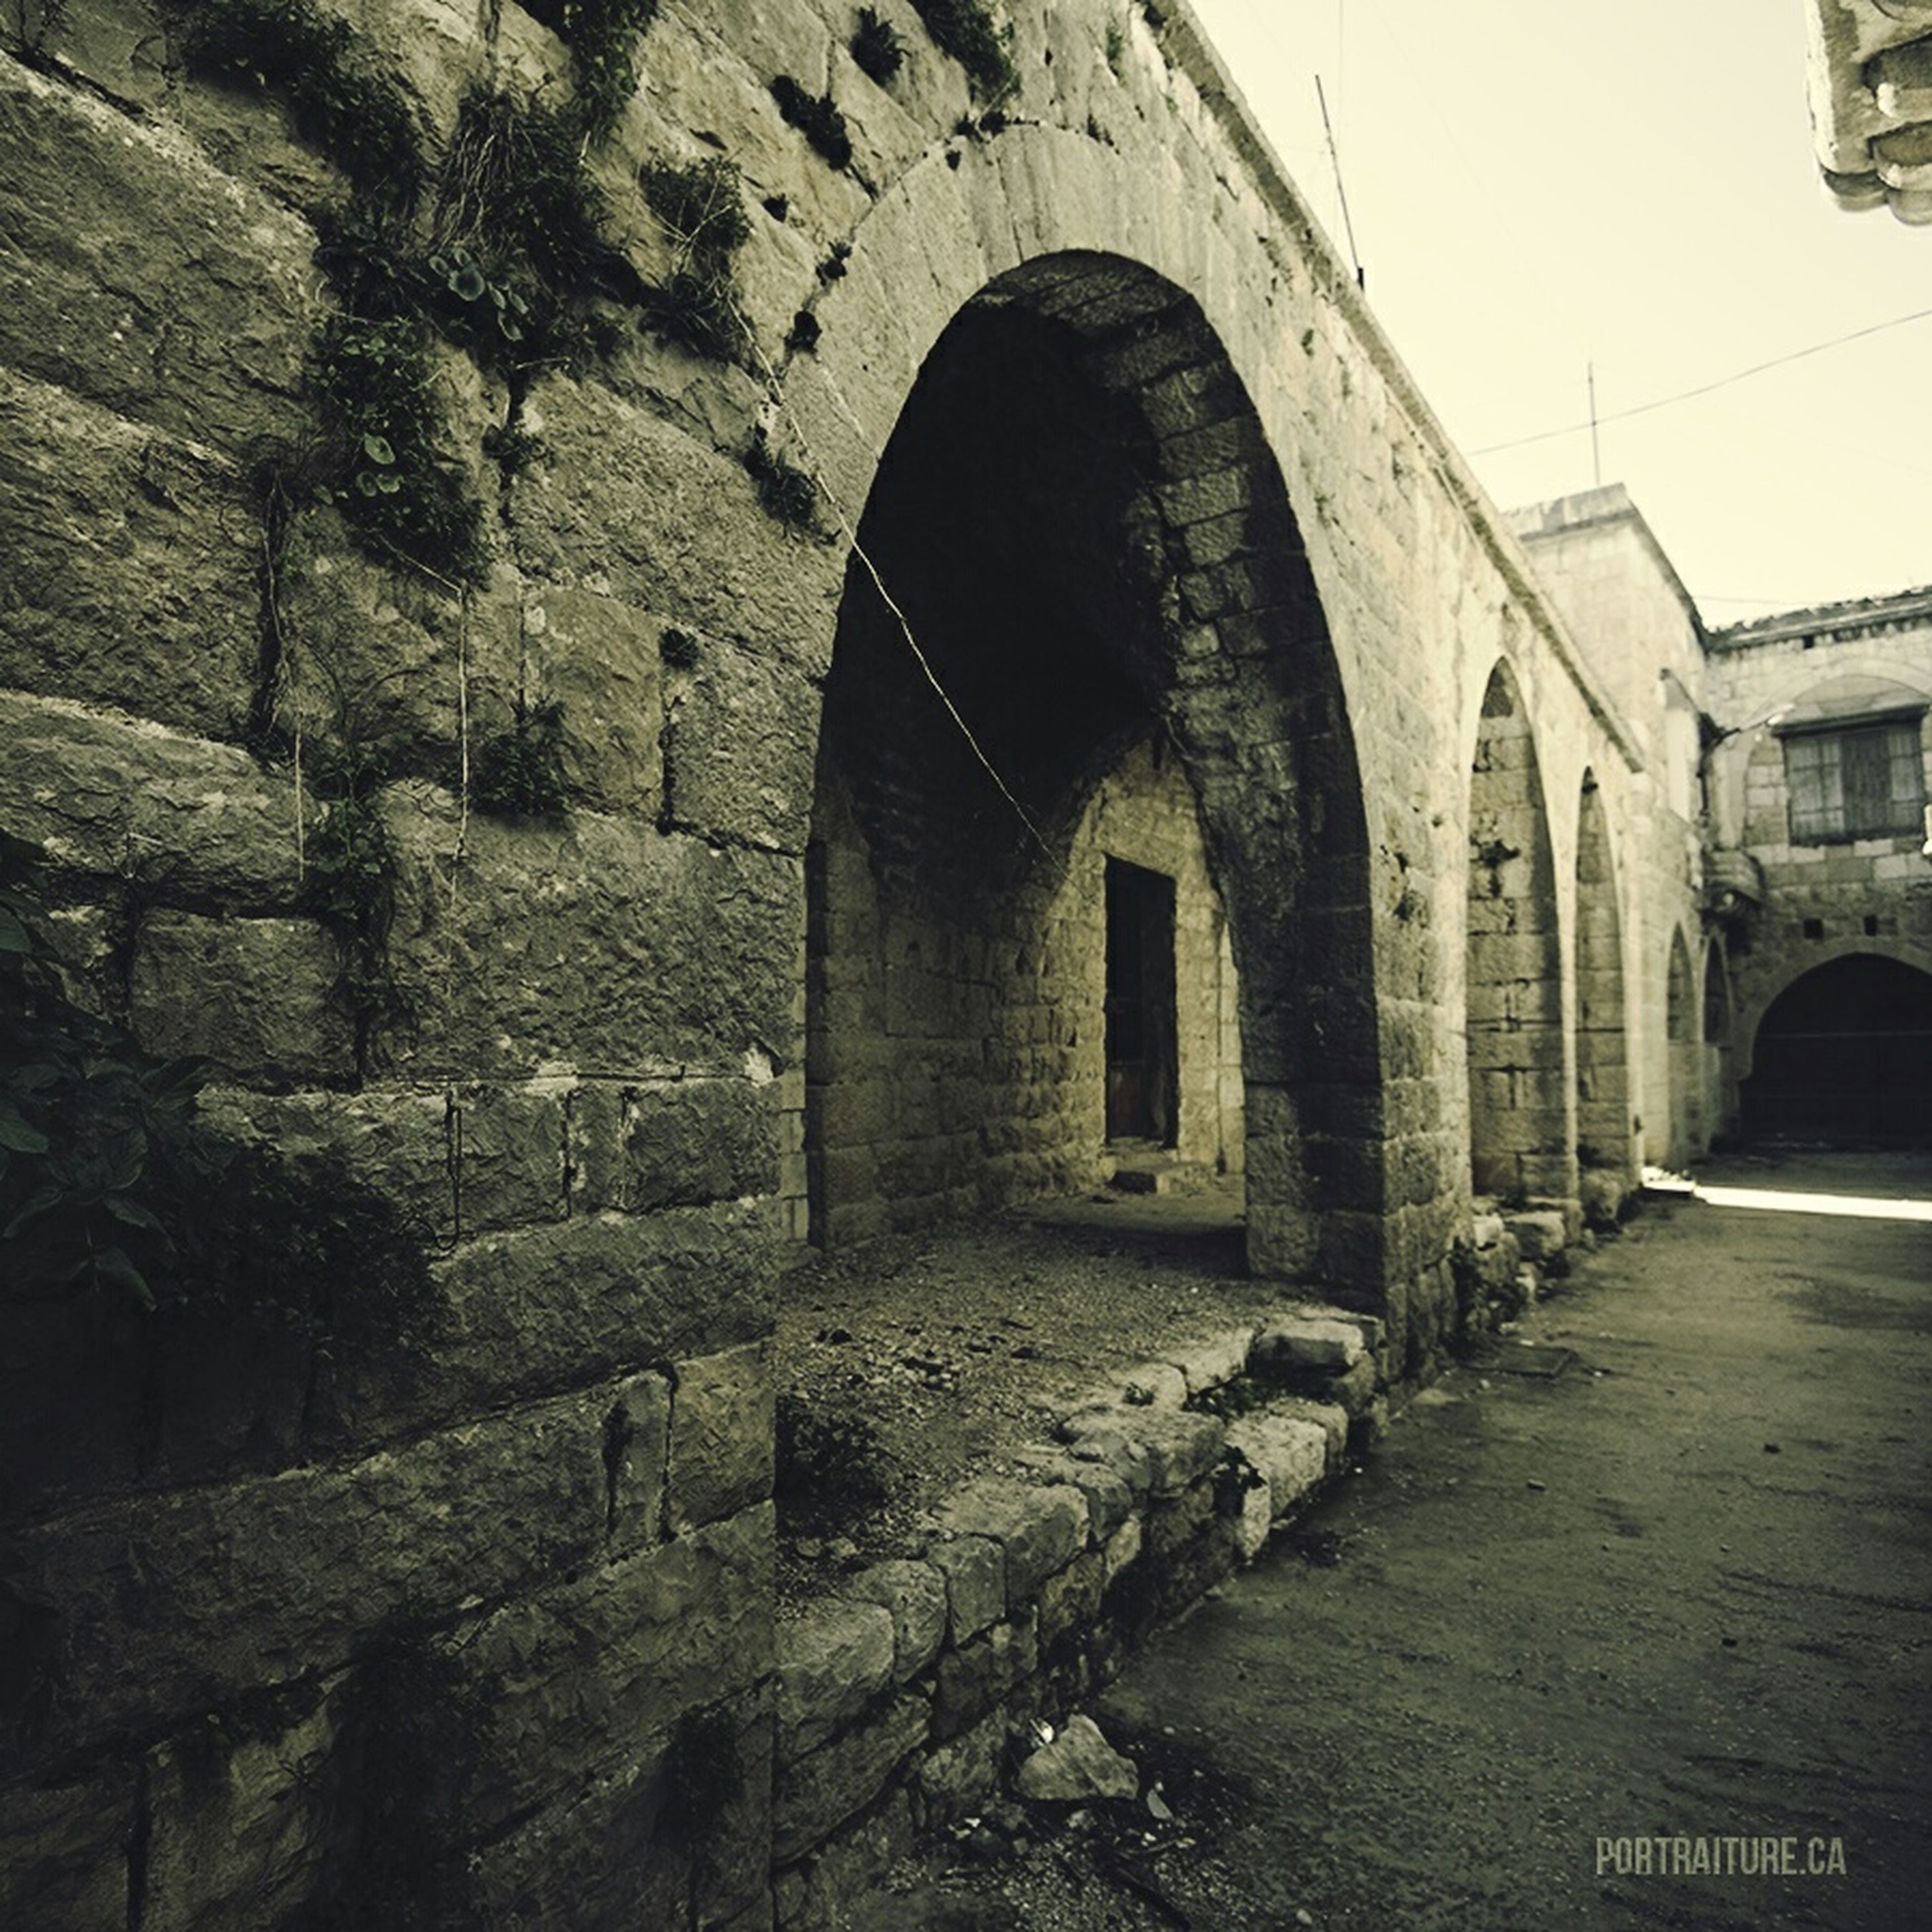 architecture, built structure, arch, building exterior, old, history, stone wall, wall - building feature, brick wall, the way forward, building, archway, abandoned, old ruin, the past, arched, tunnel, wall, day, indoors